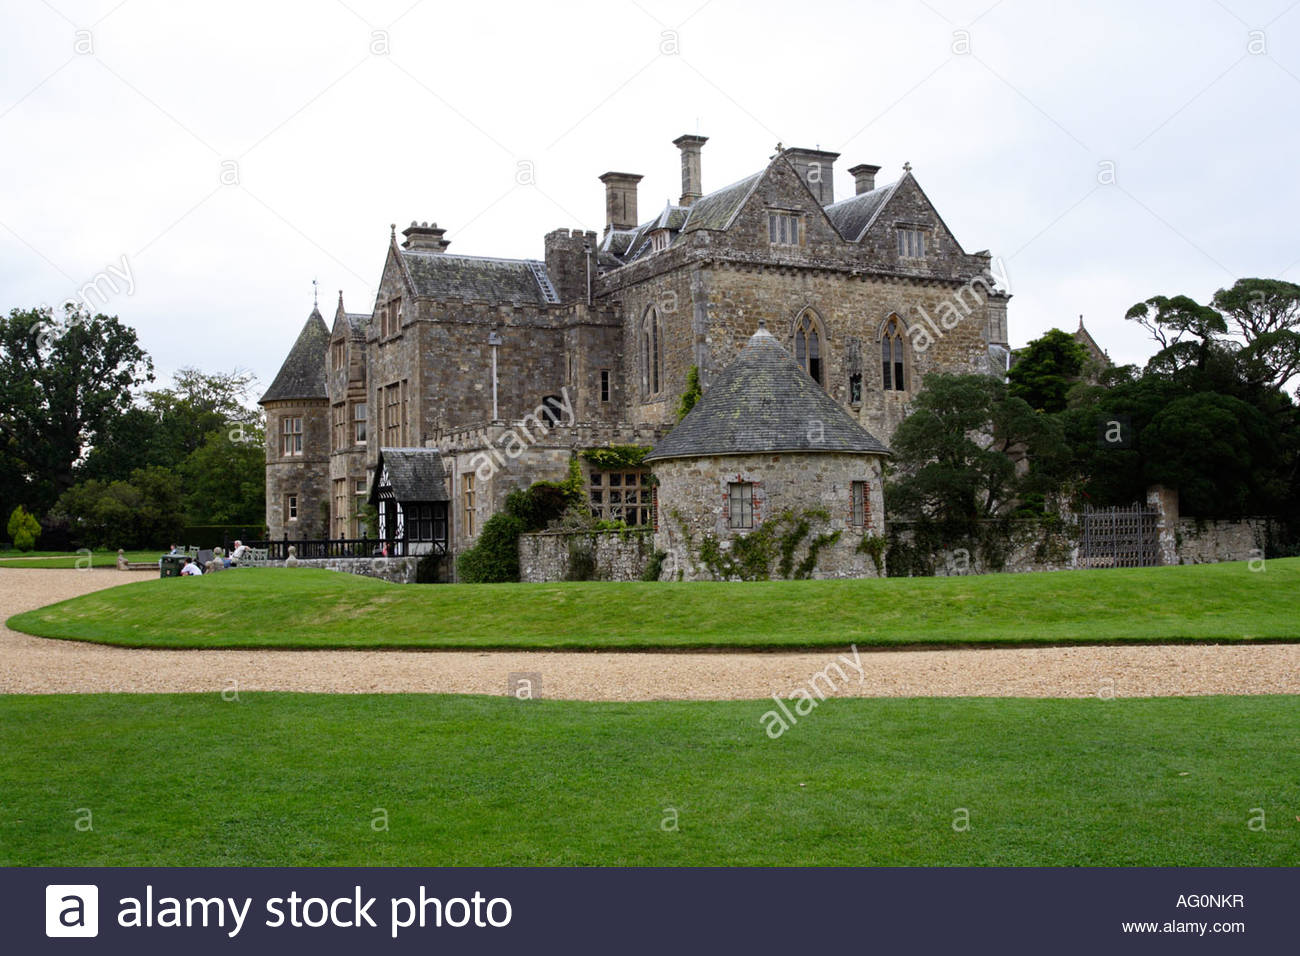 Palace House home of Lord Montagu of Beaulieu, next to the National Motor Museum; Hampshire England - Stock Image